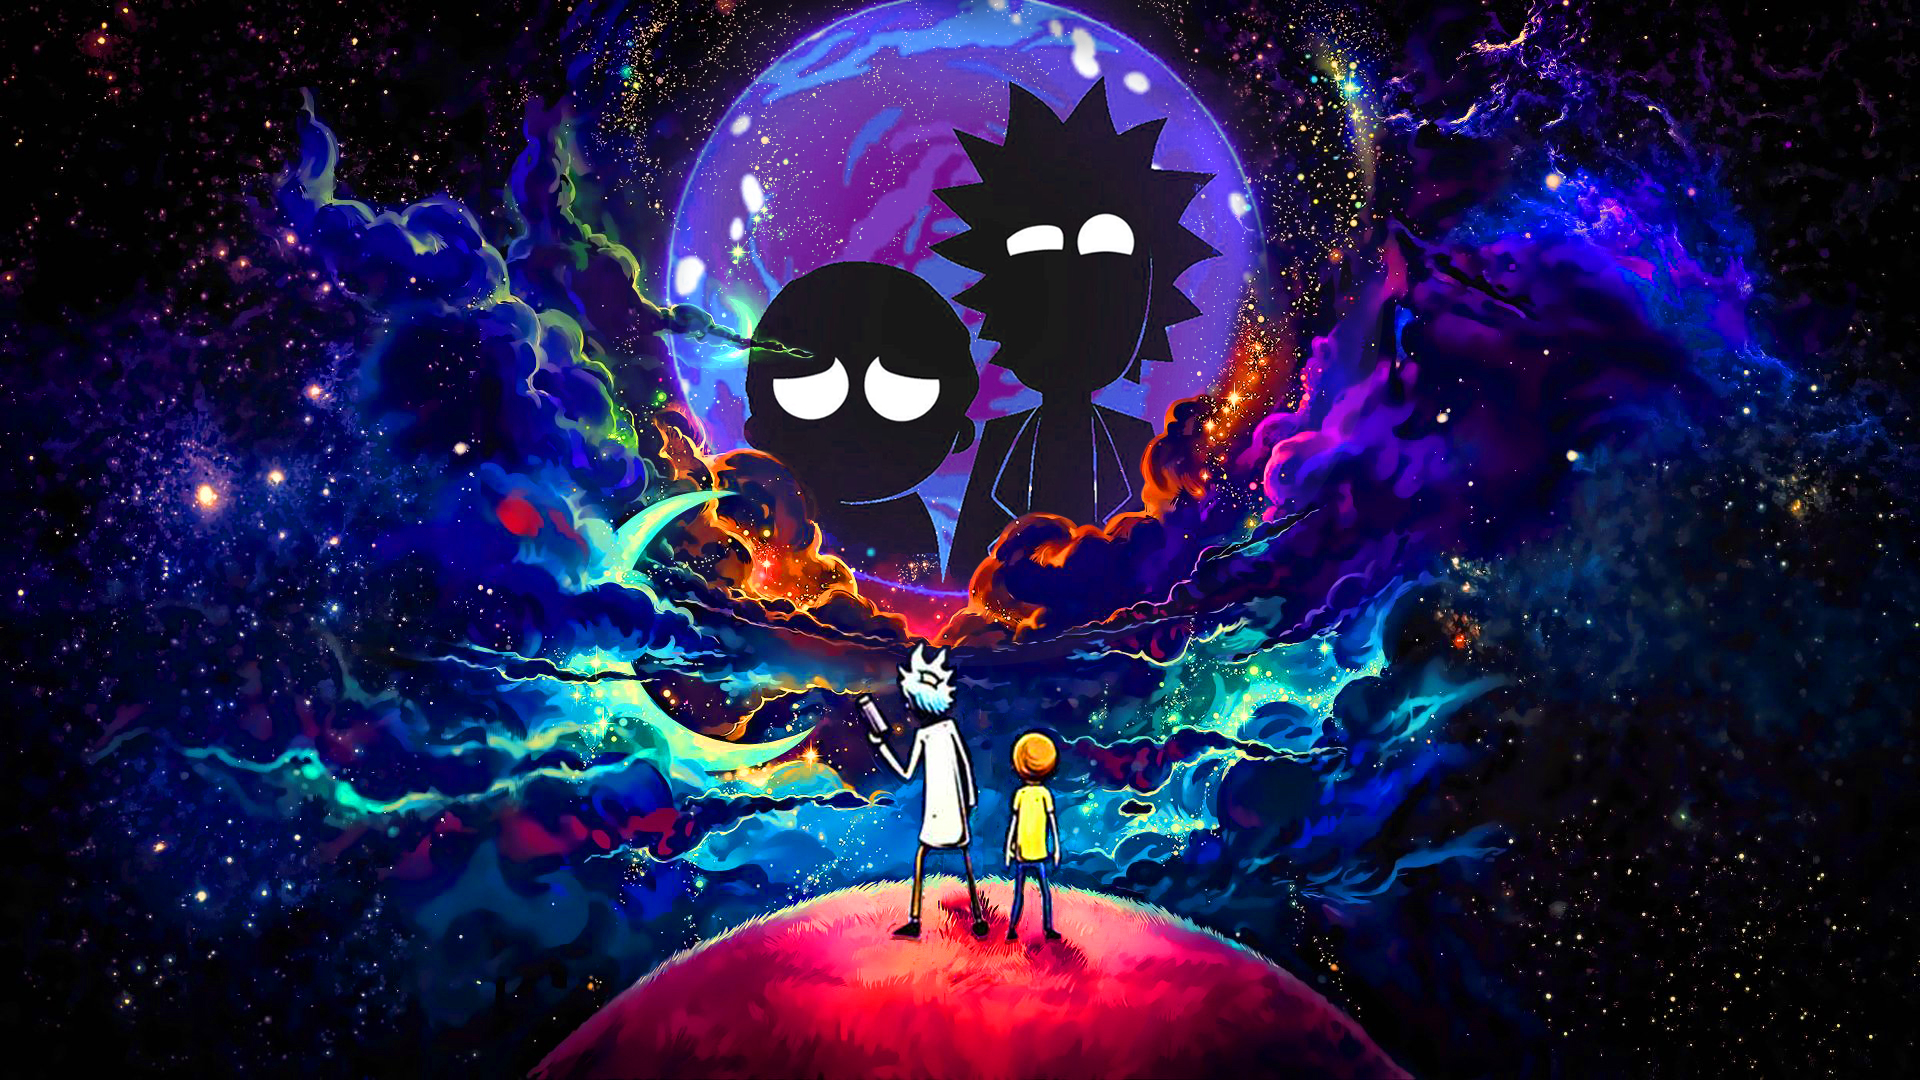 1920x1080 Rick and Morty in Outer Space 1080P Laptop Full ...